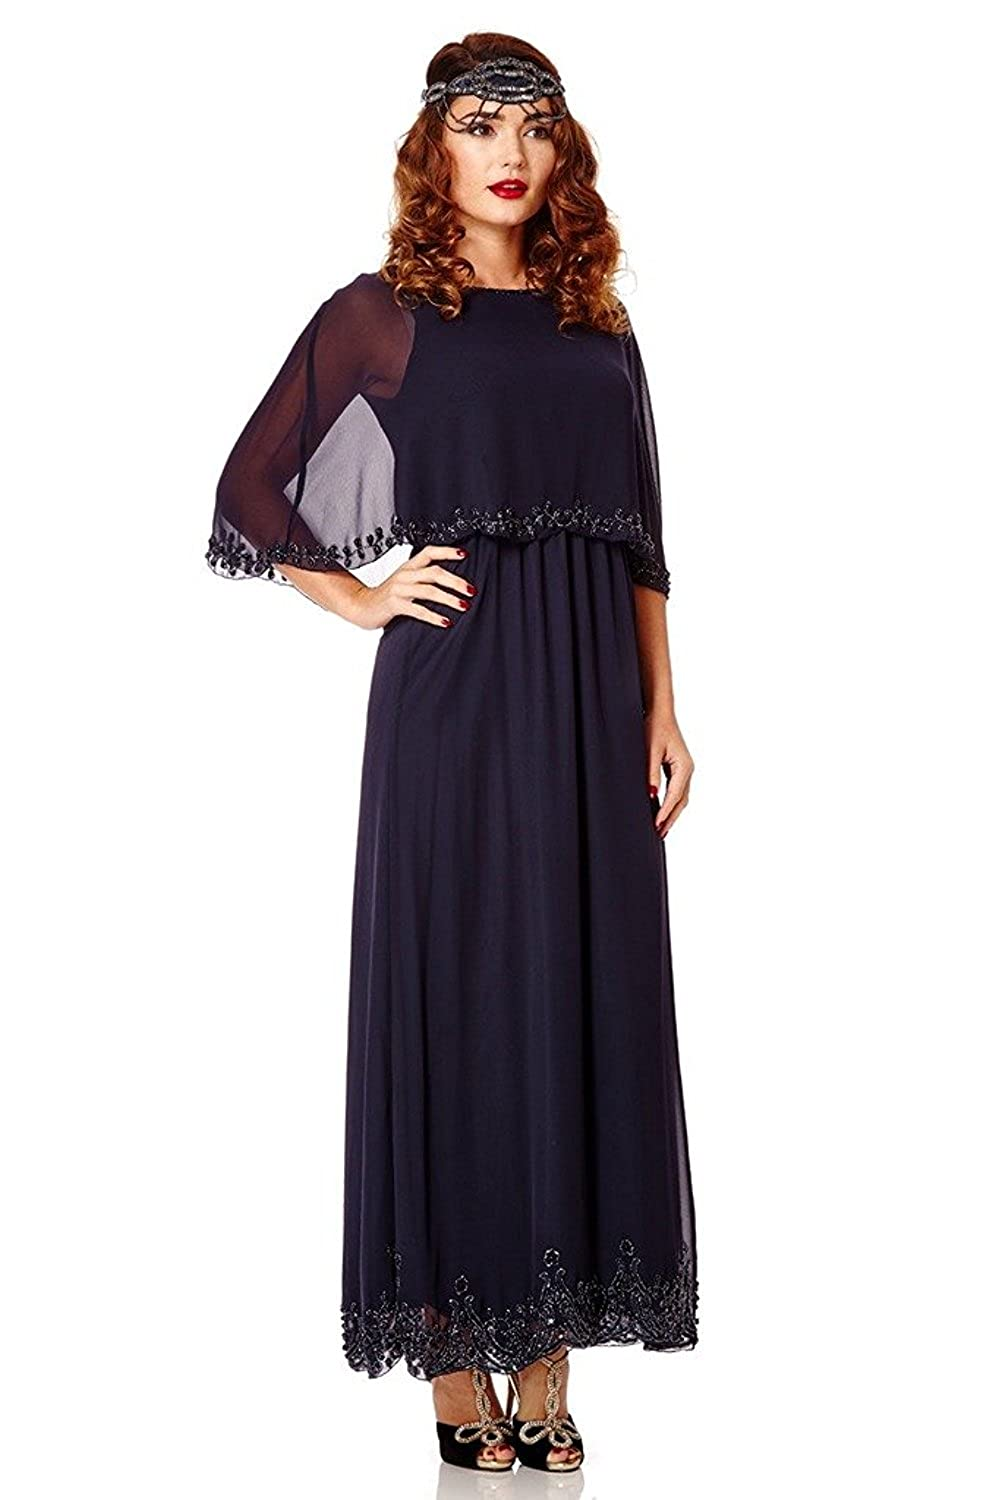 Find Downton Abbey Style Dresses in the UK Carolyn Vintage Inspired Maxi Cape Dress in Navy Blue £49.00 AT vintagedancer.com